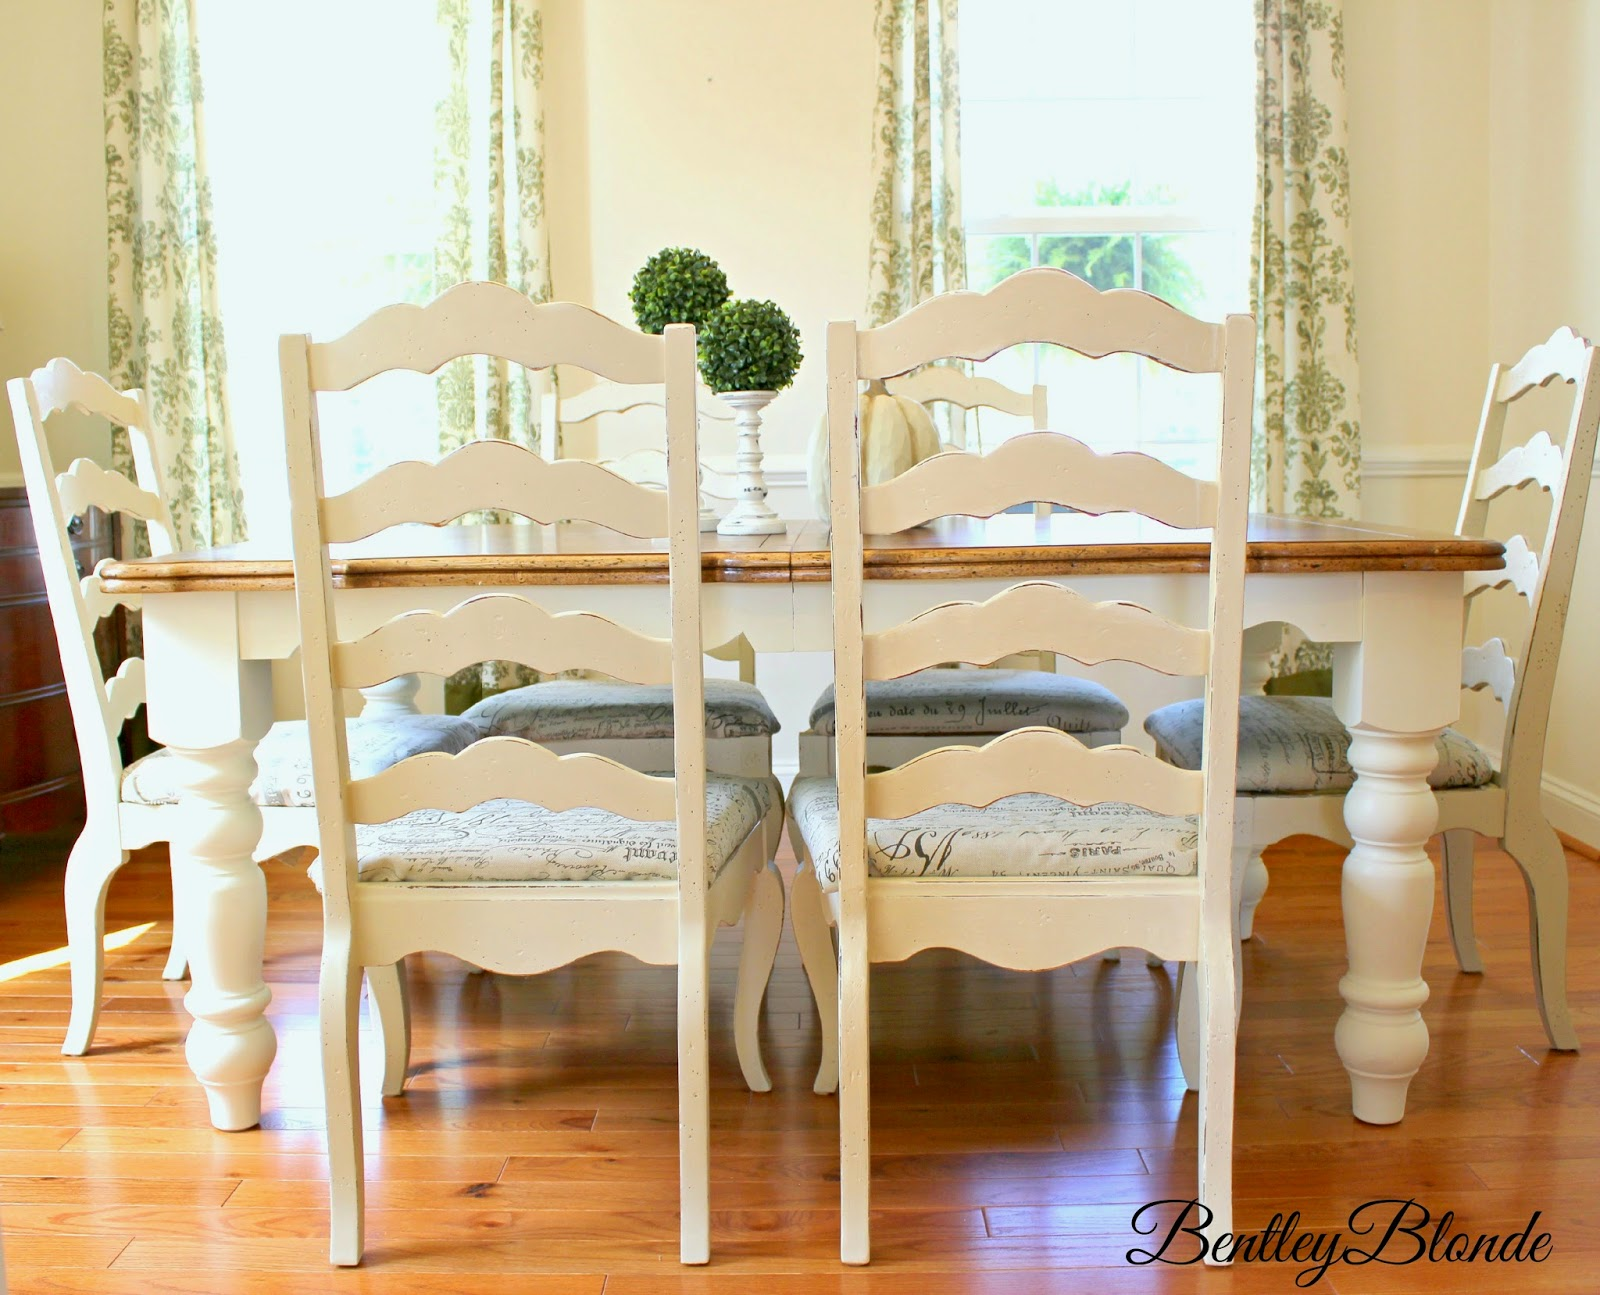 BentleyBlonde DIY Farmhouse Table & Dining Set Makeover with